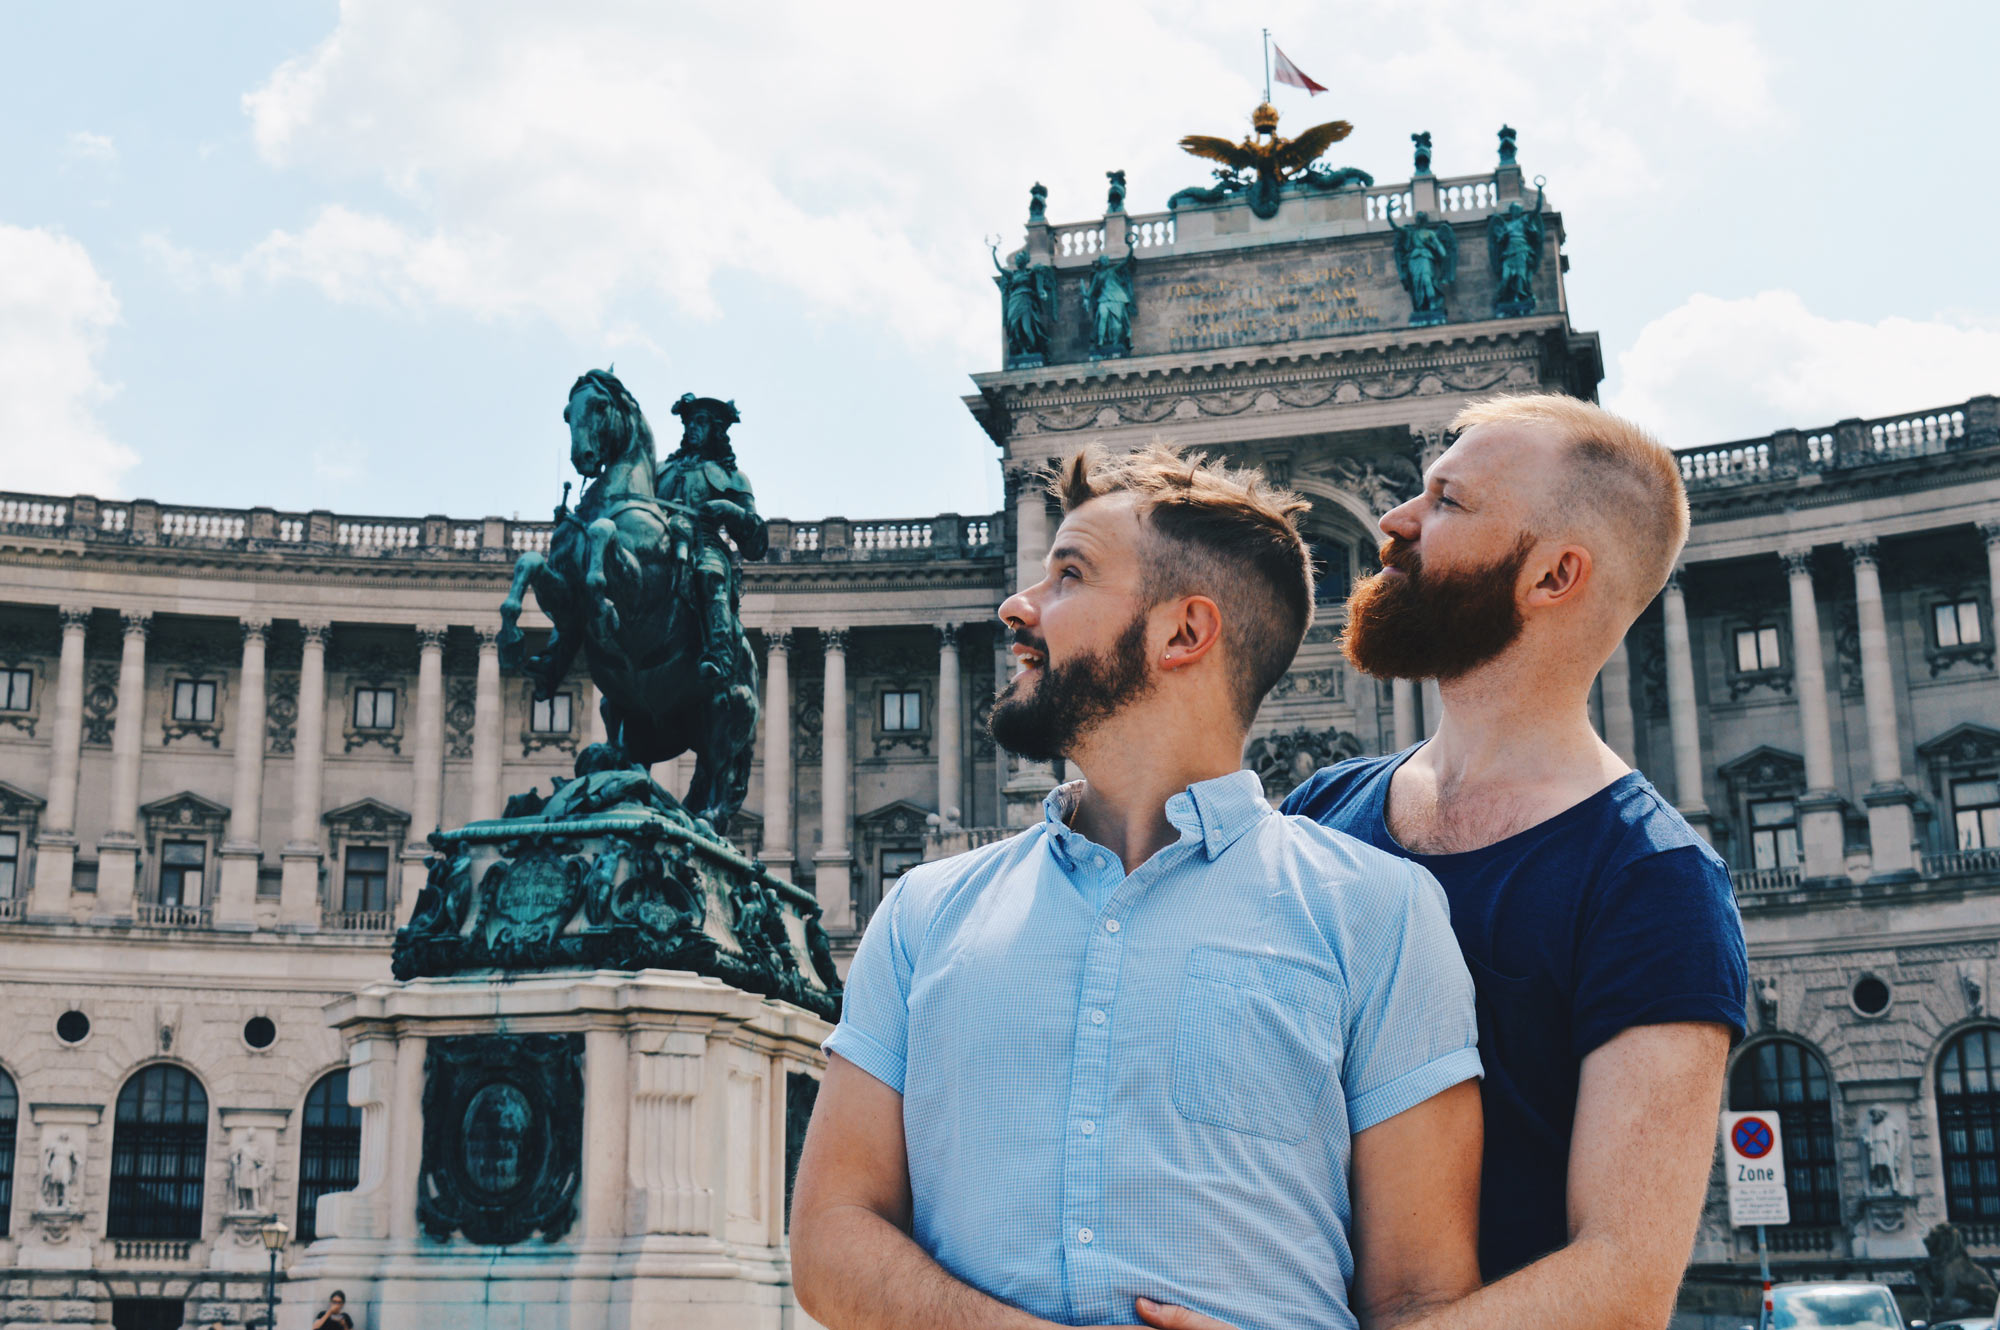 Gay Wien Designhotel Le Méridien A proud kiss next to the statue of the (gay) Prinz Eugen - equestrian statue | Gay-friendly Design Hotel Le Méridien Vienna © Coupleofmen.com